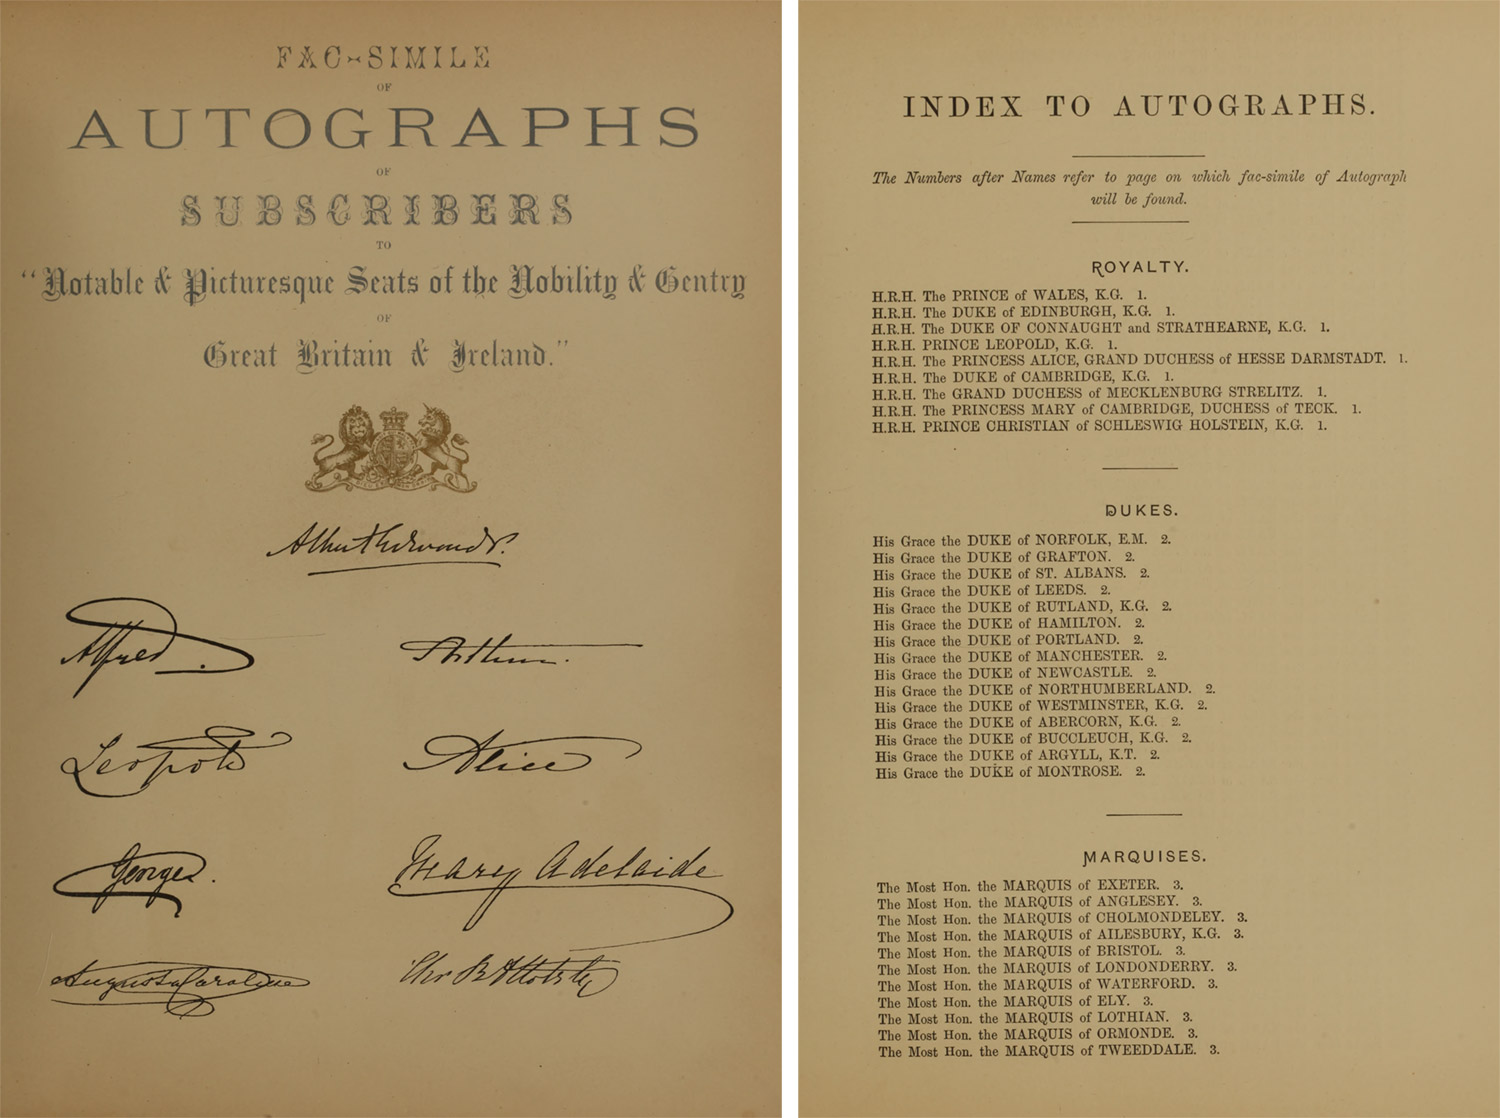 Original scans of signatures of royalty